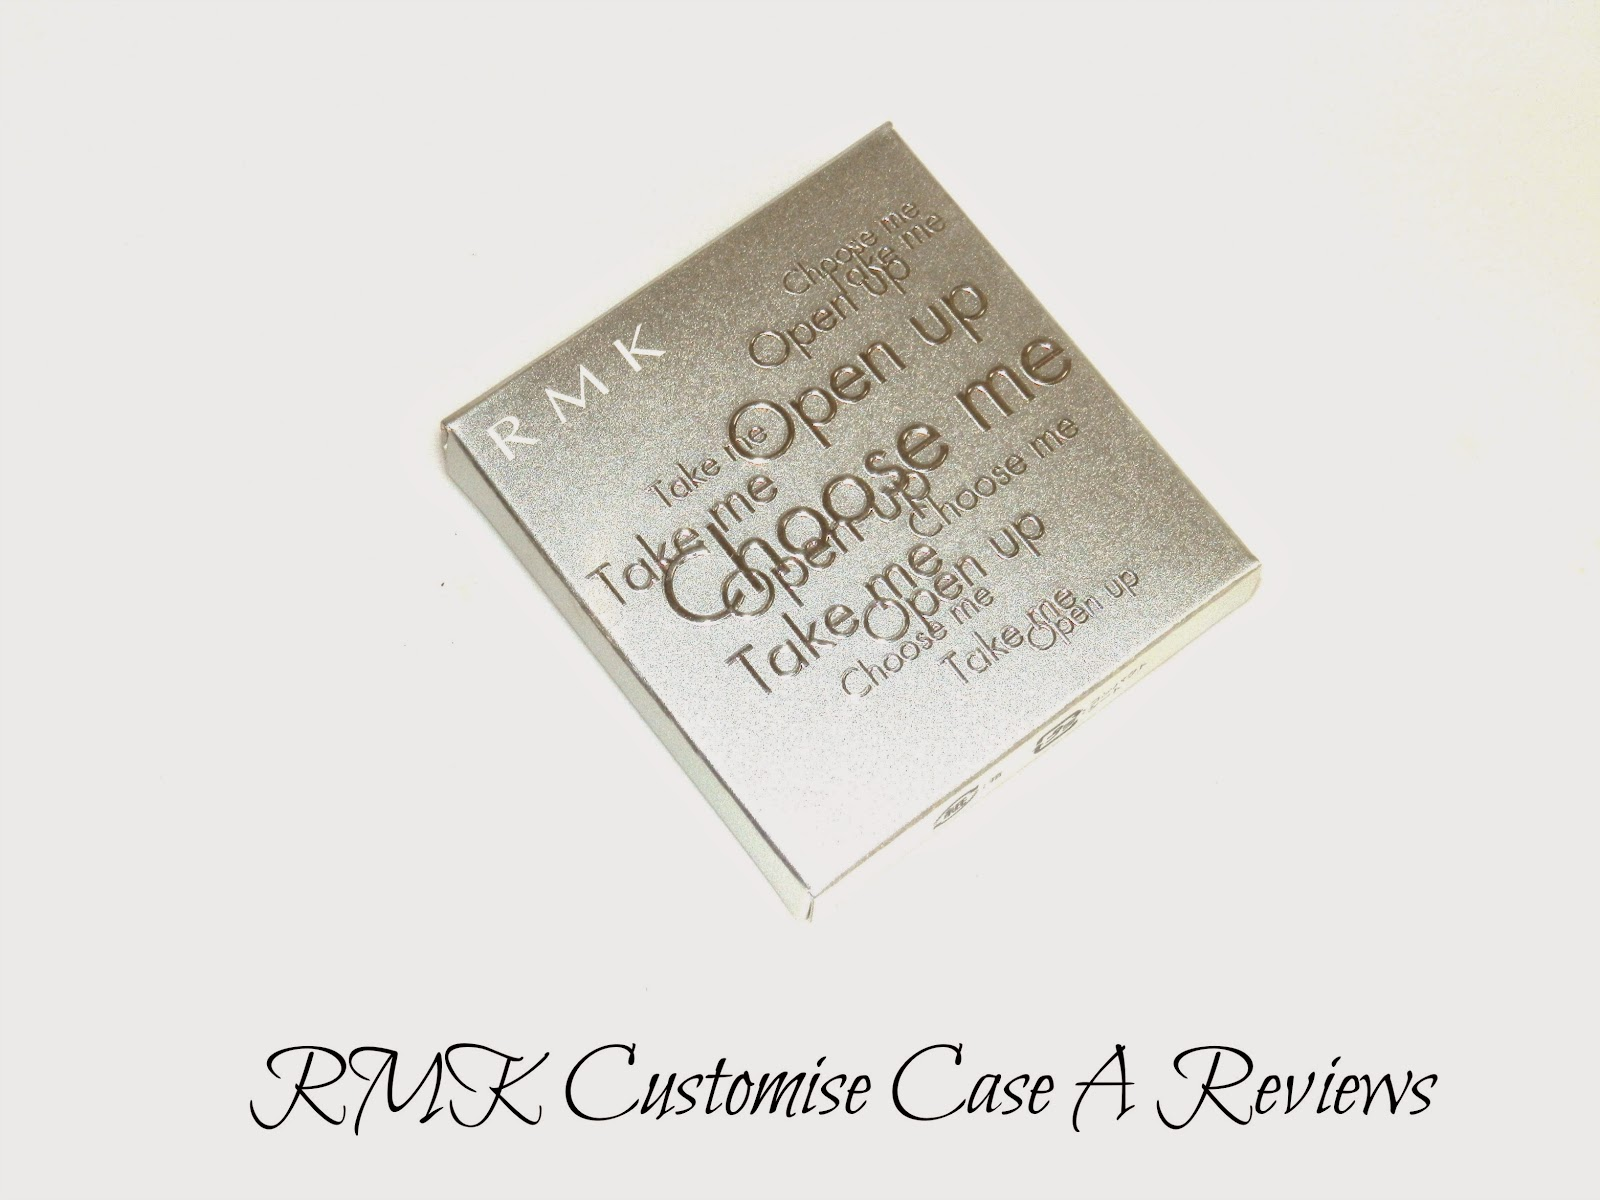 RMK Customise Case A Reviews